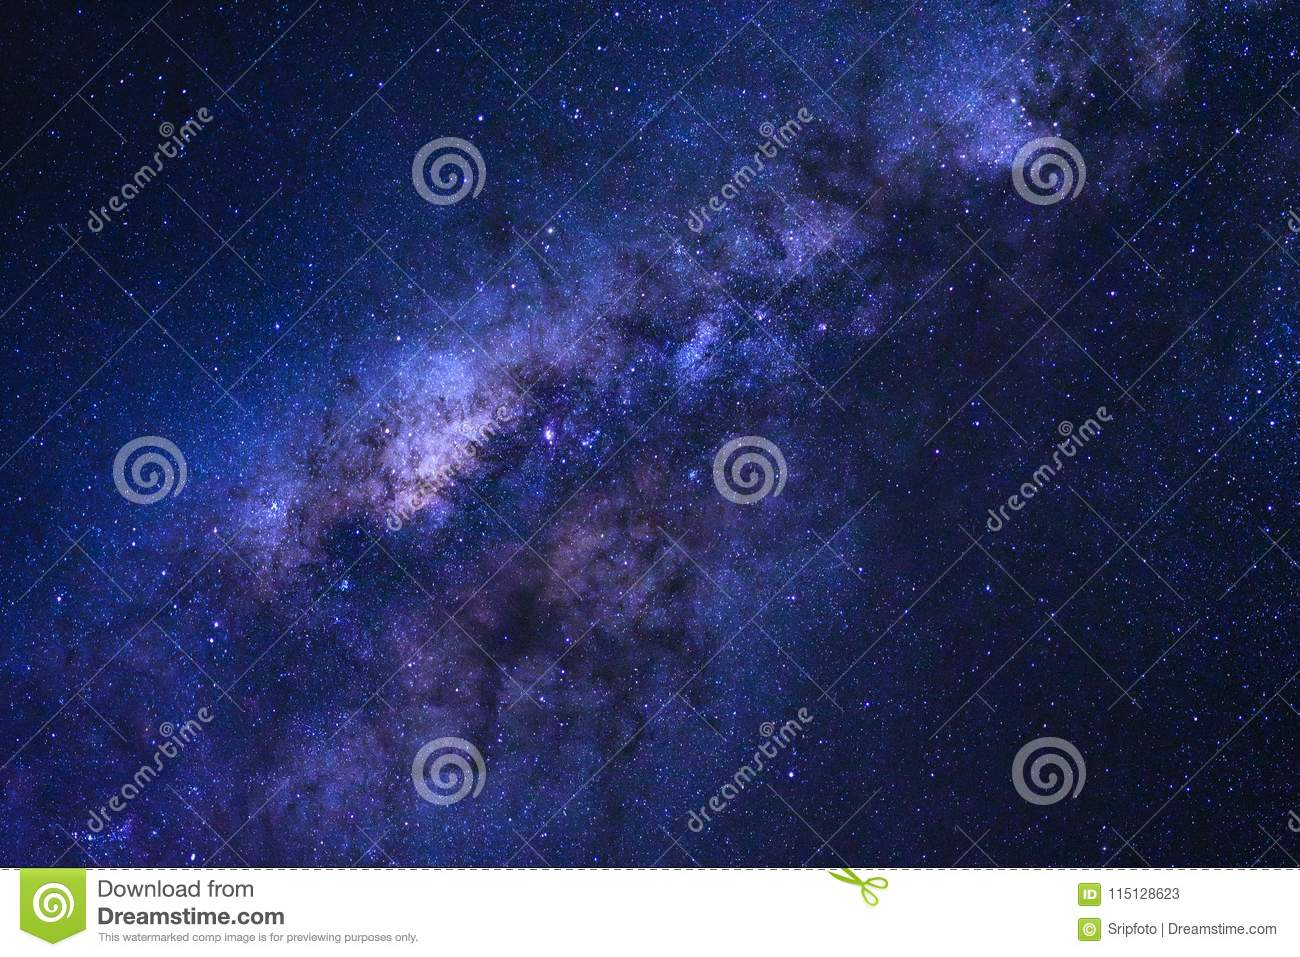 Starry night sky and milky way galaxy with stars and space dust